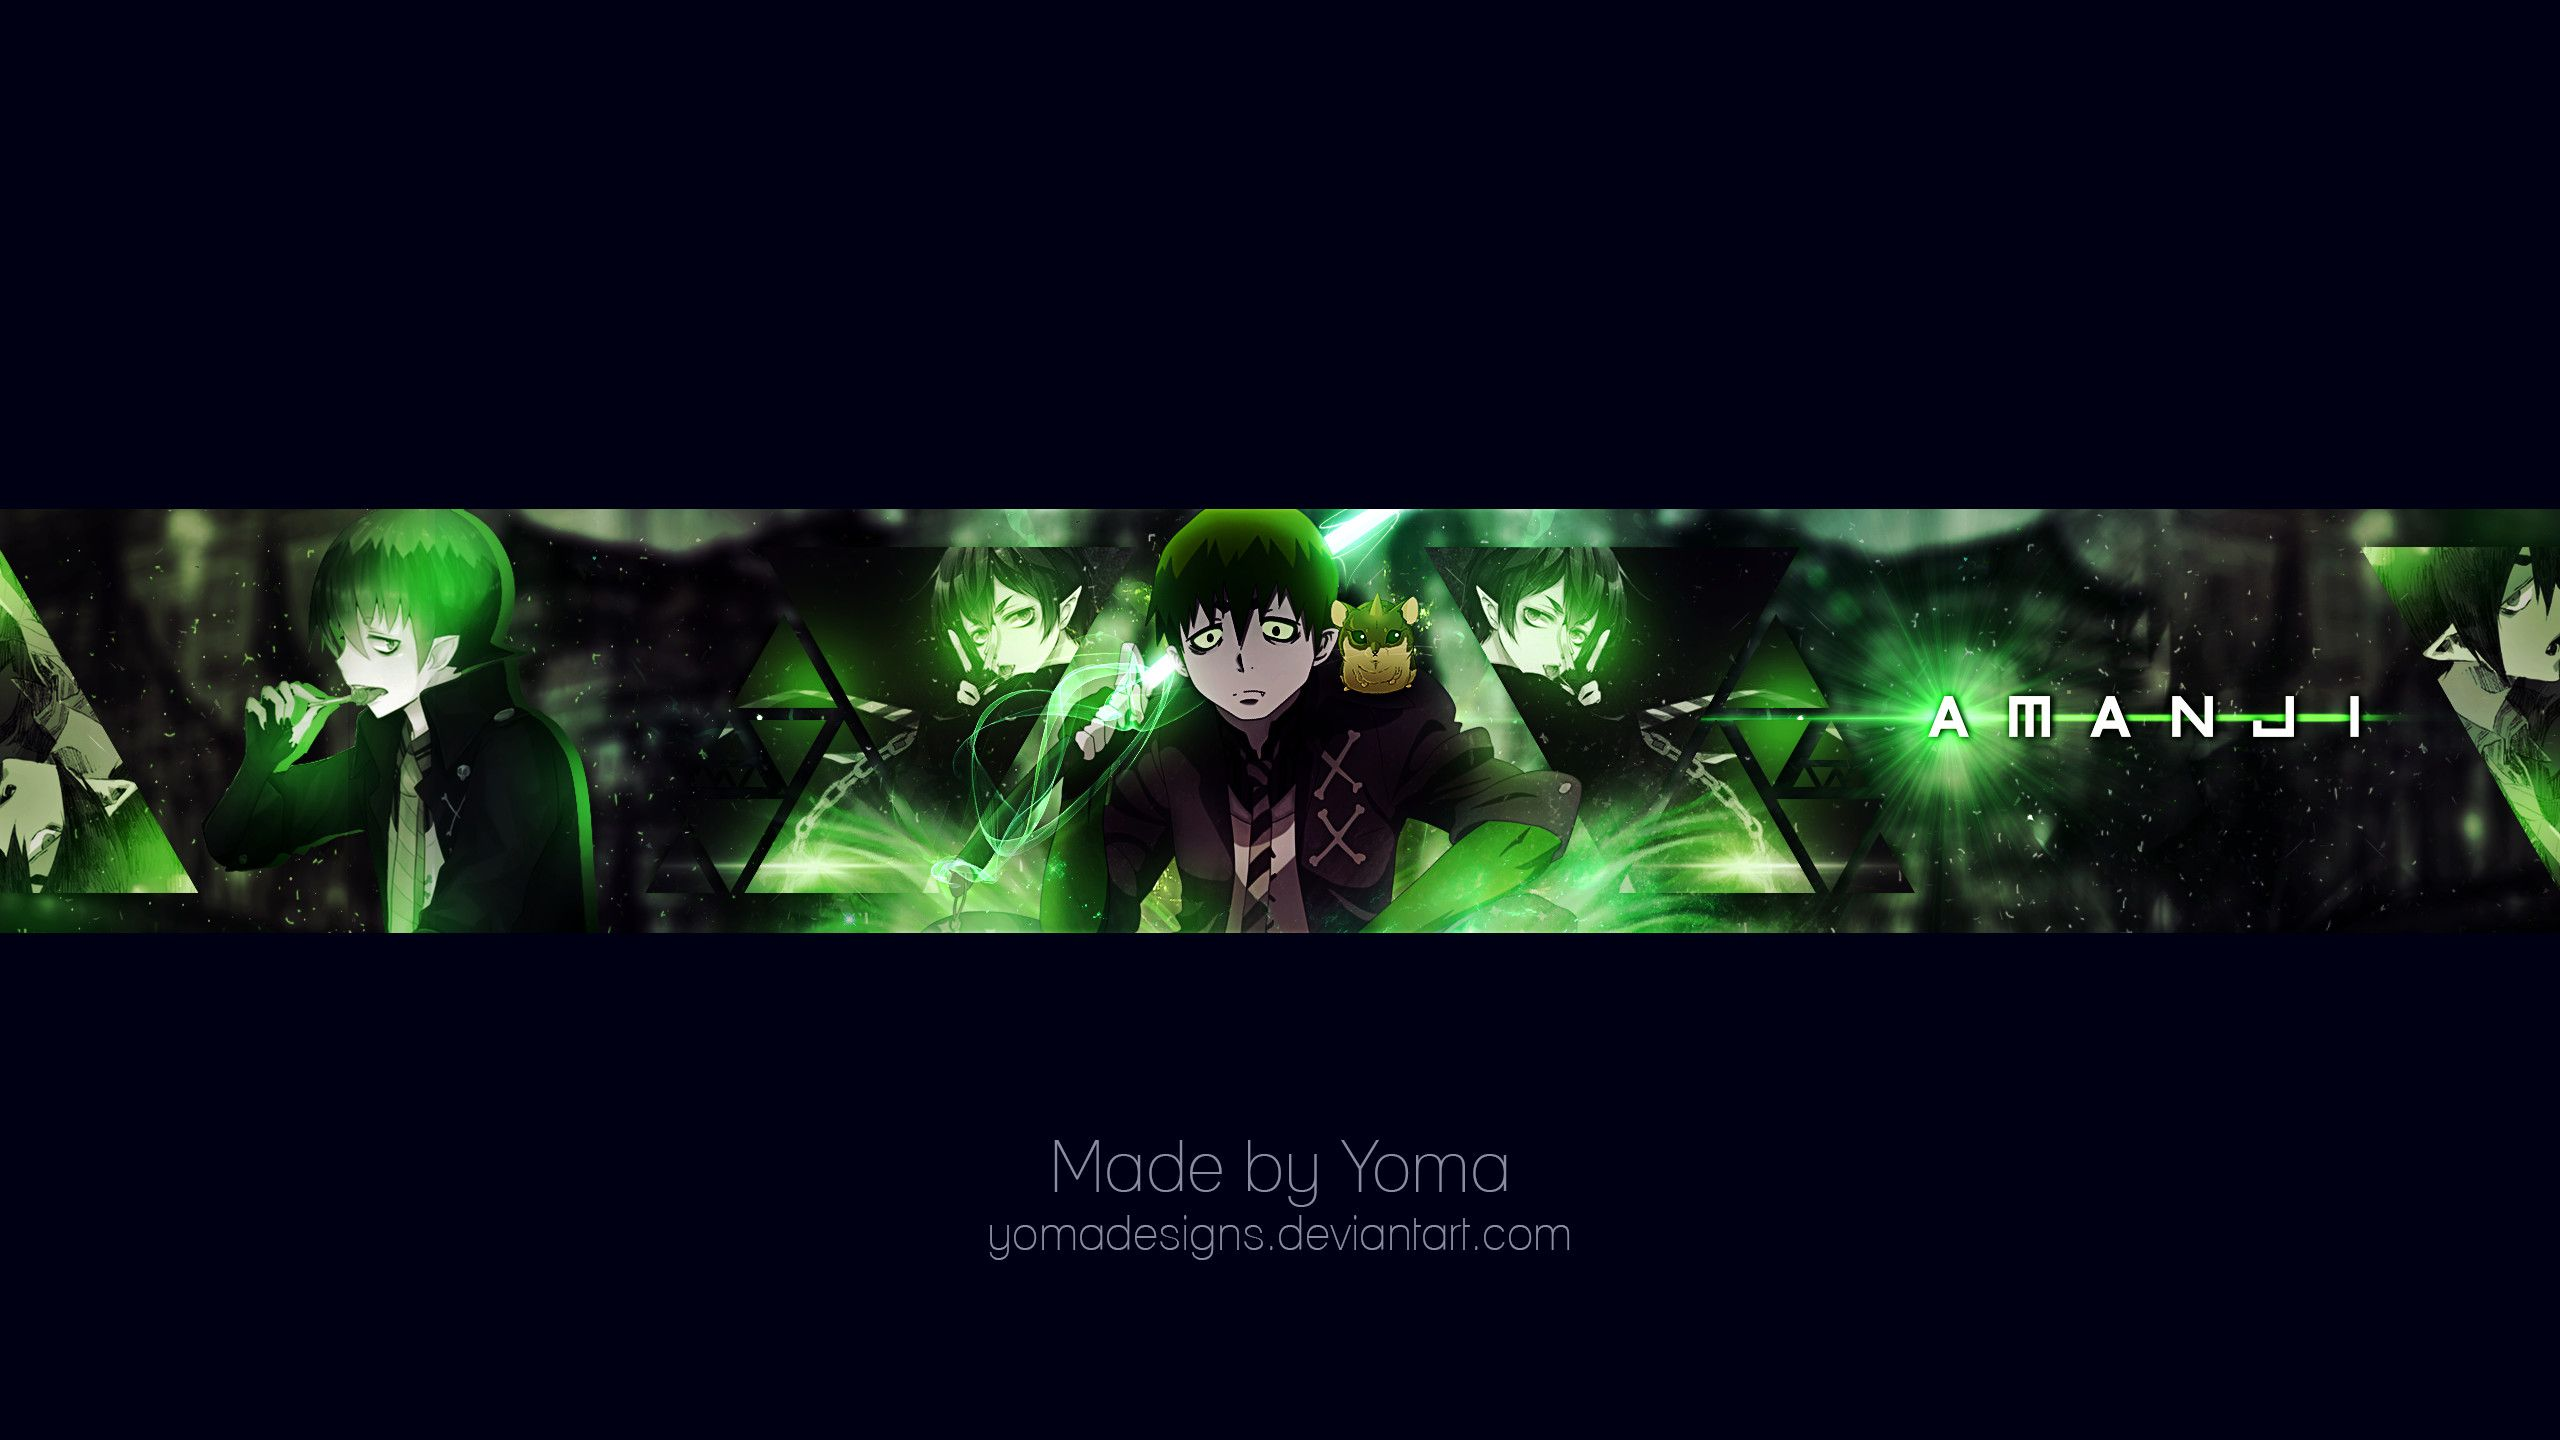 Anime Banners Wallpaper In 2020 Youtube Banners Anime Banner